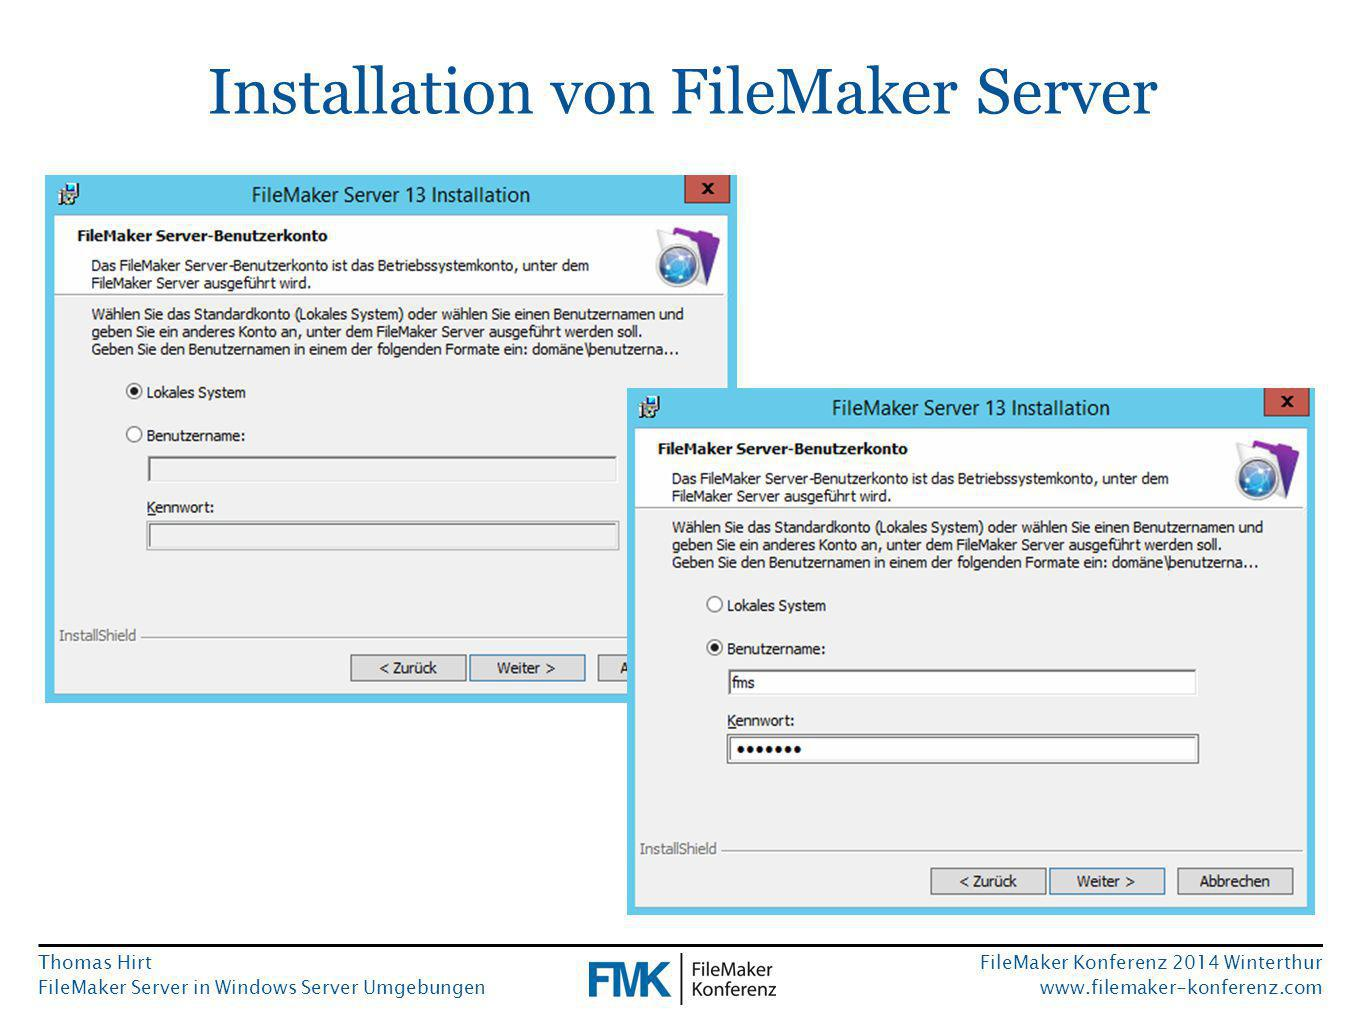 Thomas Hirt FileMaker Server in Windows Server Umgebungen FileMaker Konferenz 2014 Winterthur www.filemaker-konferenz.com Installation von FileMaker Server